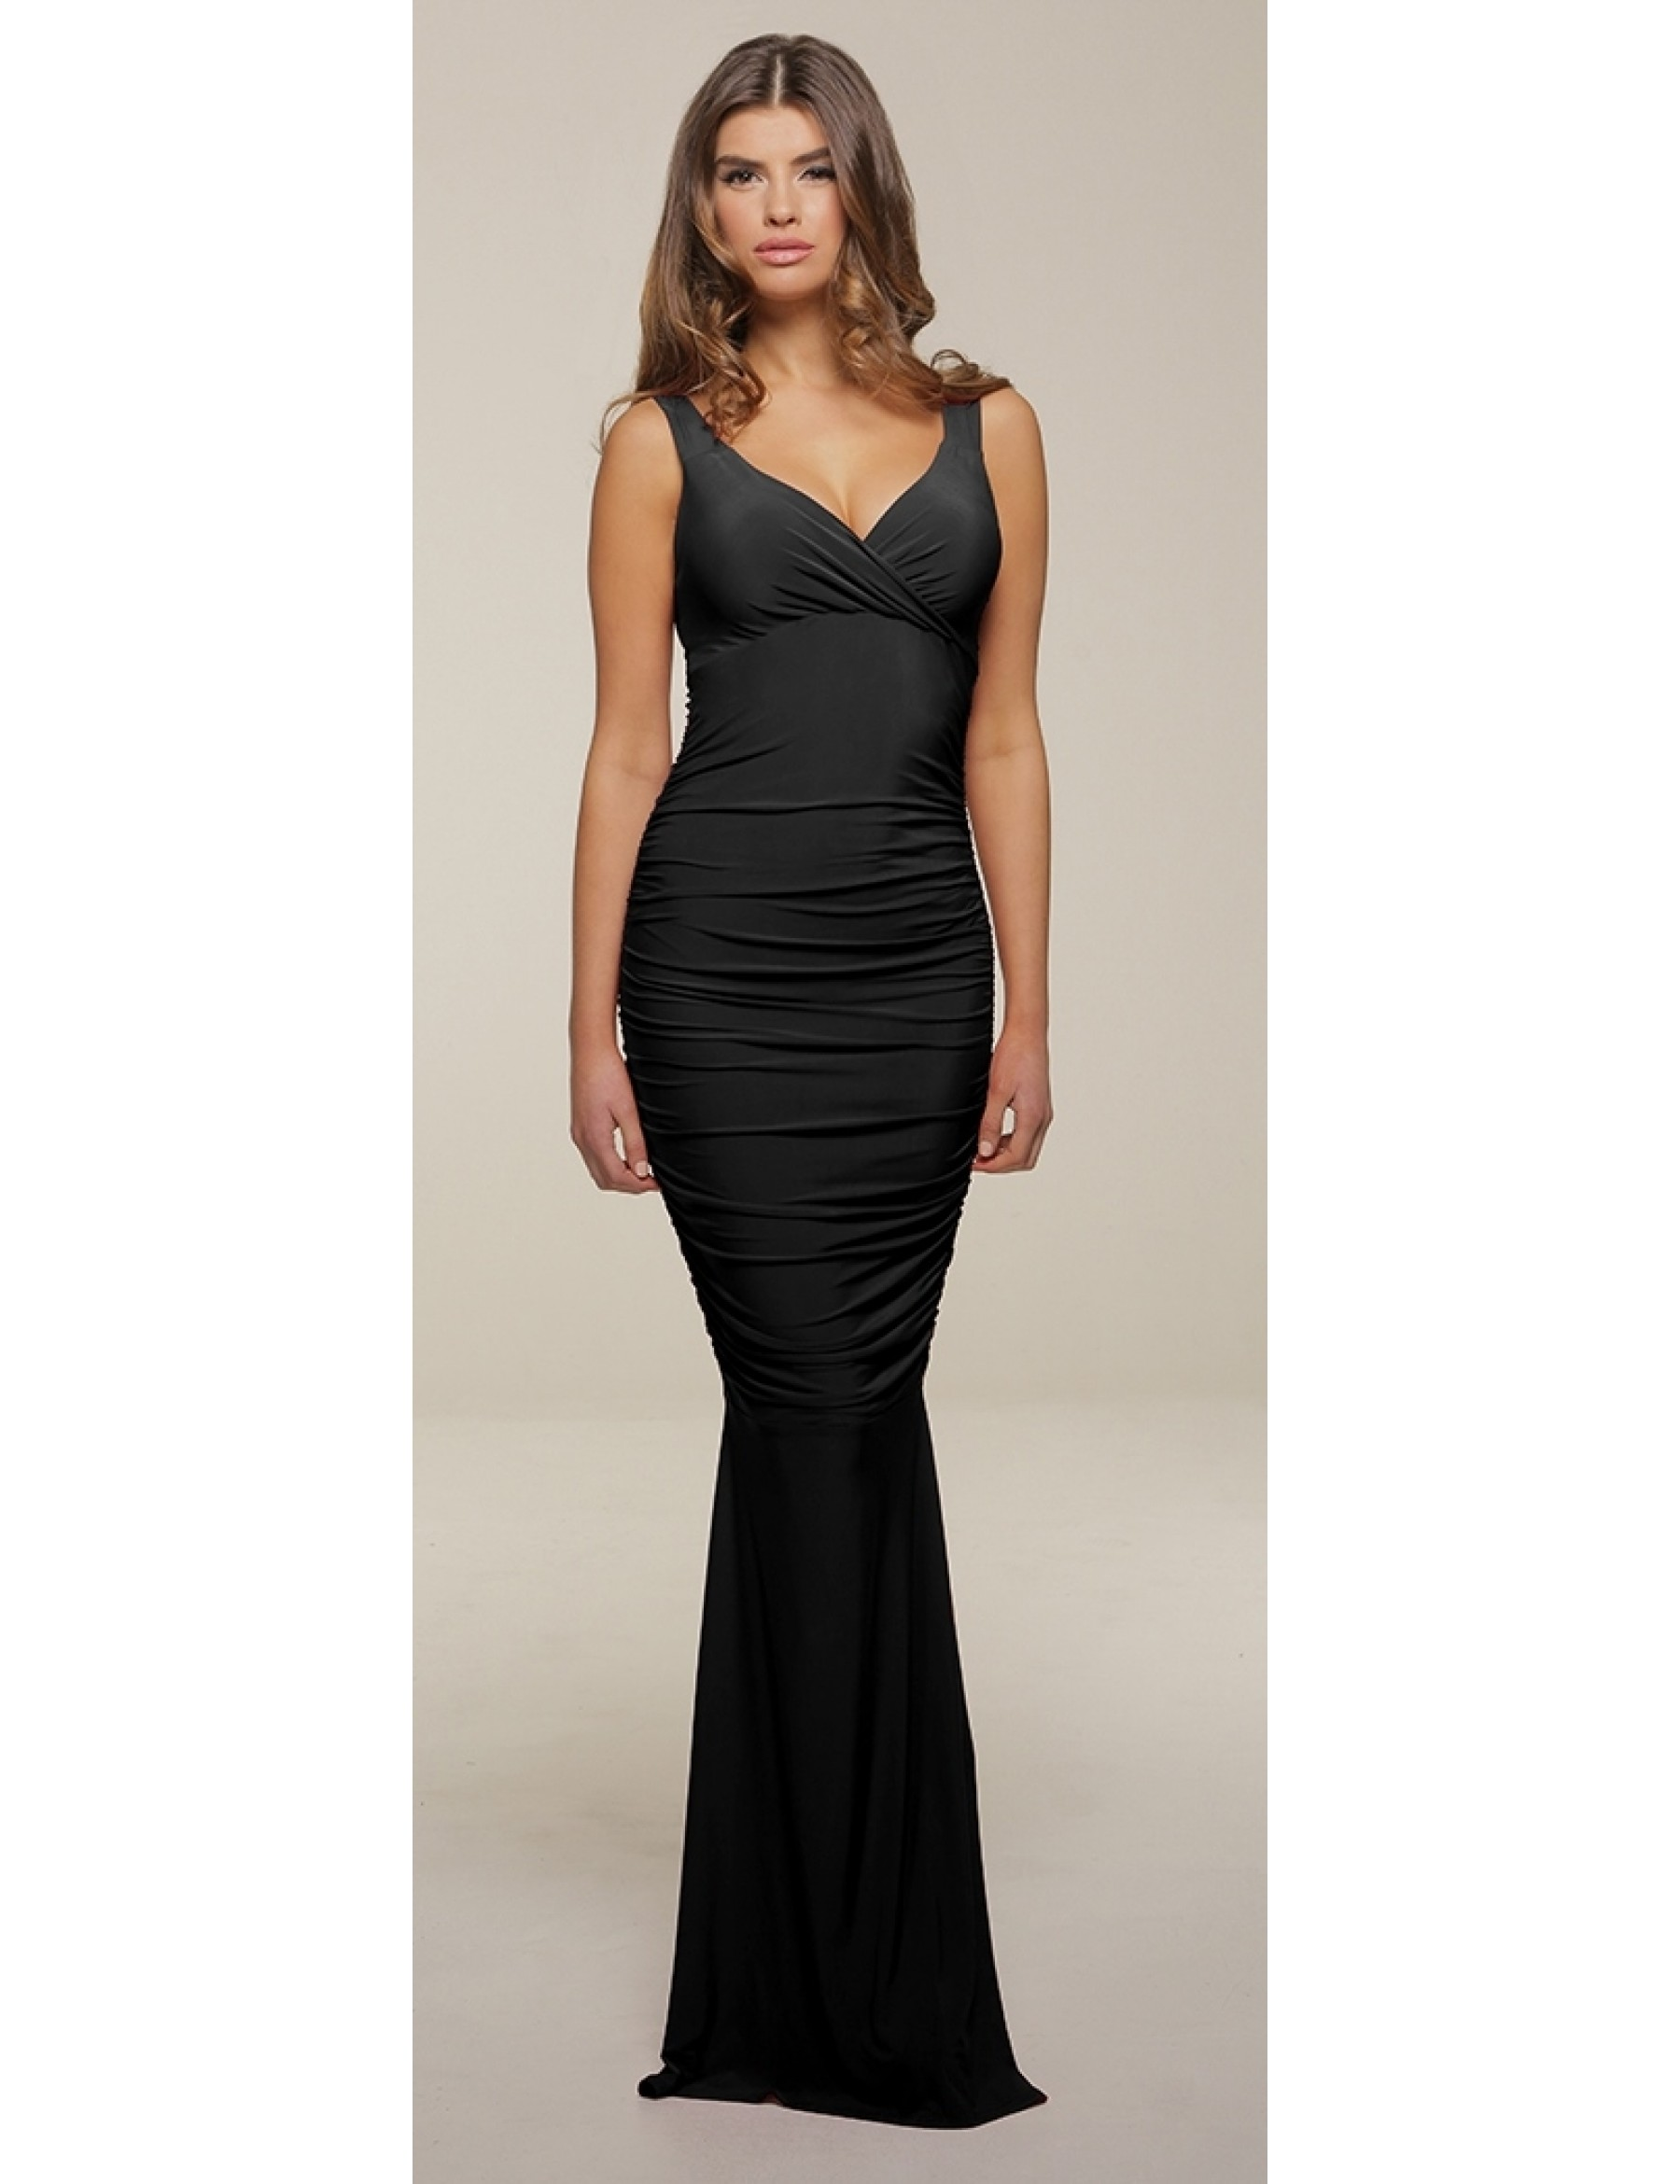 Black Slinky Ruched Evening Dress